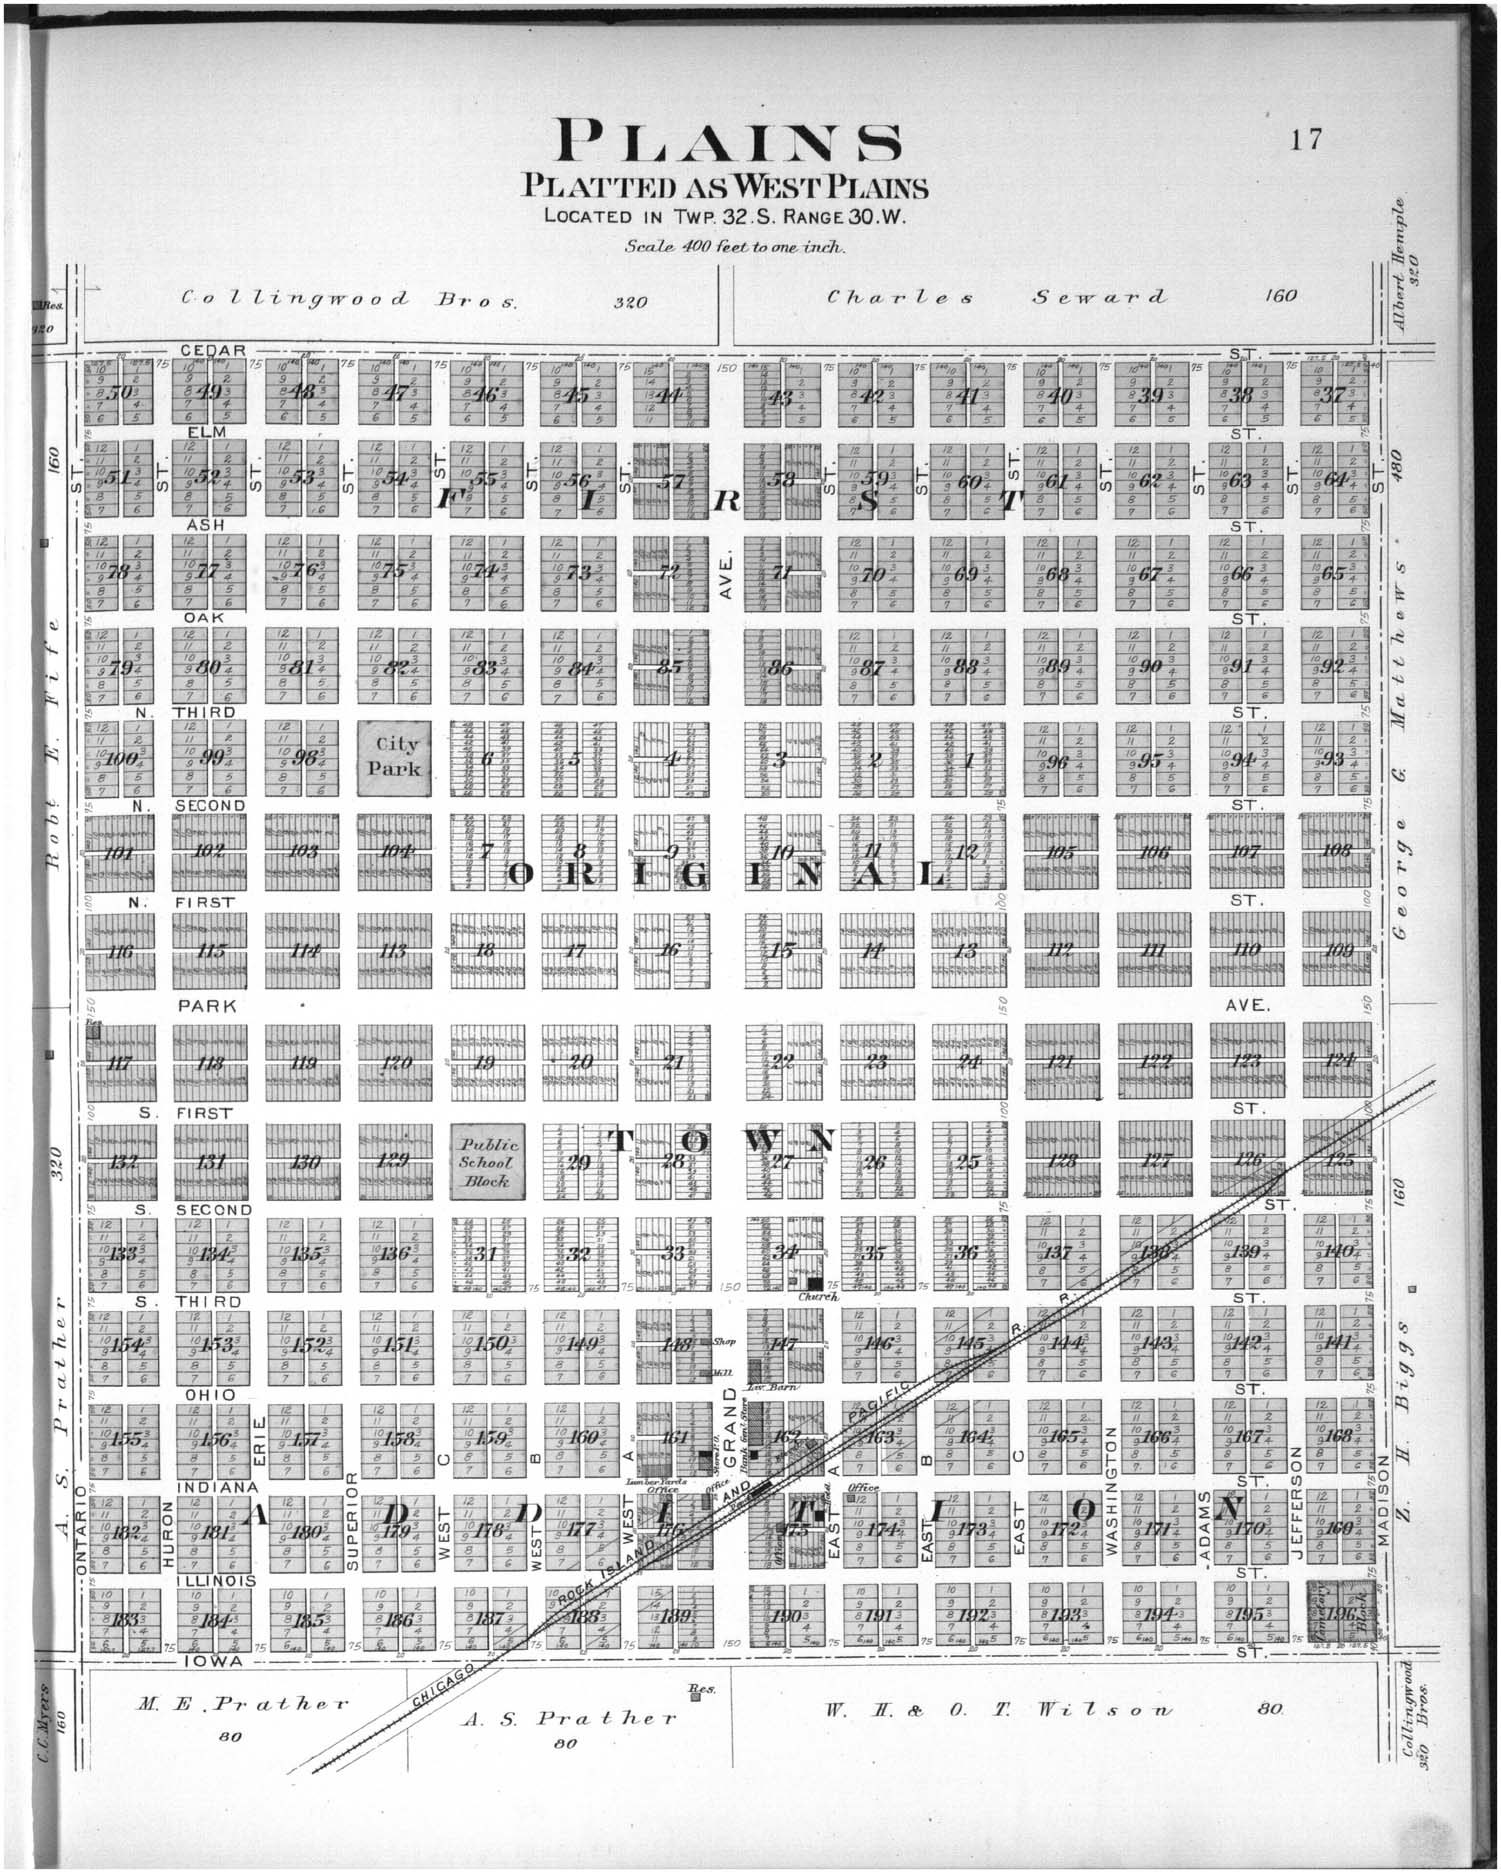 Plat book of Meade County, Kansas - 17